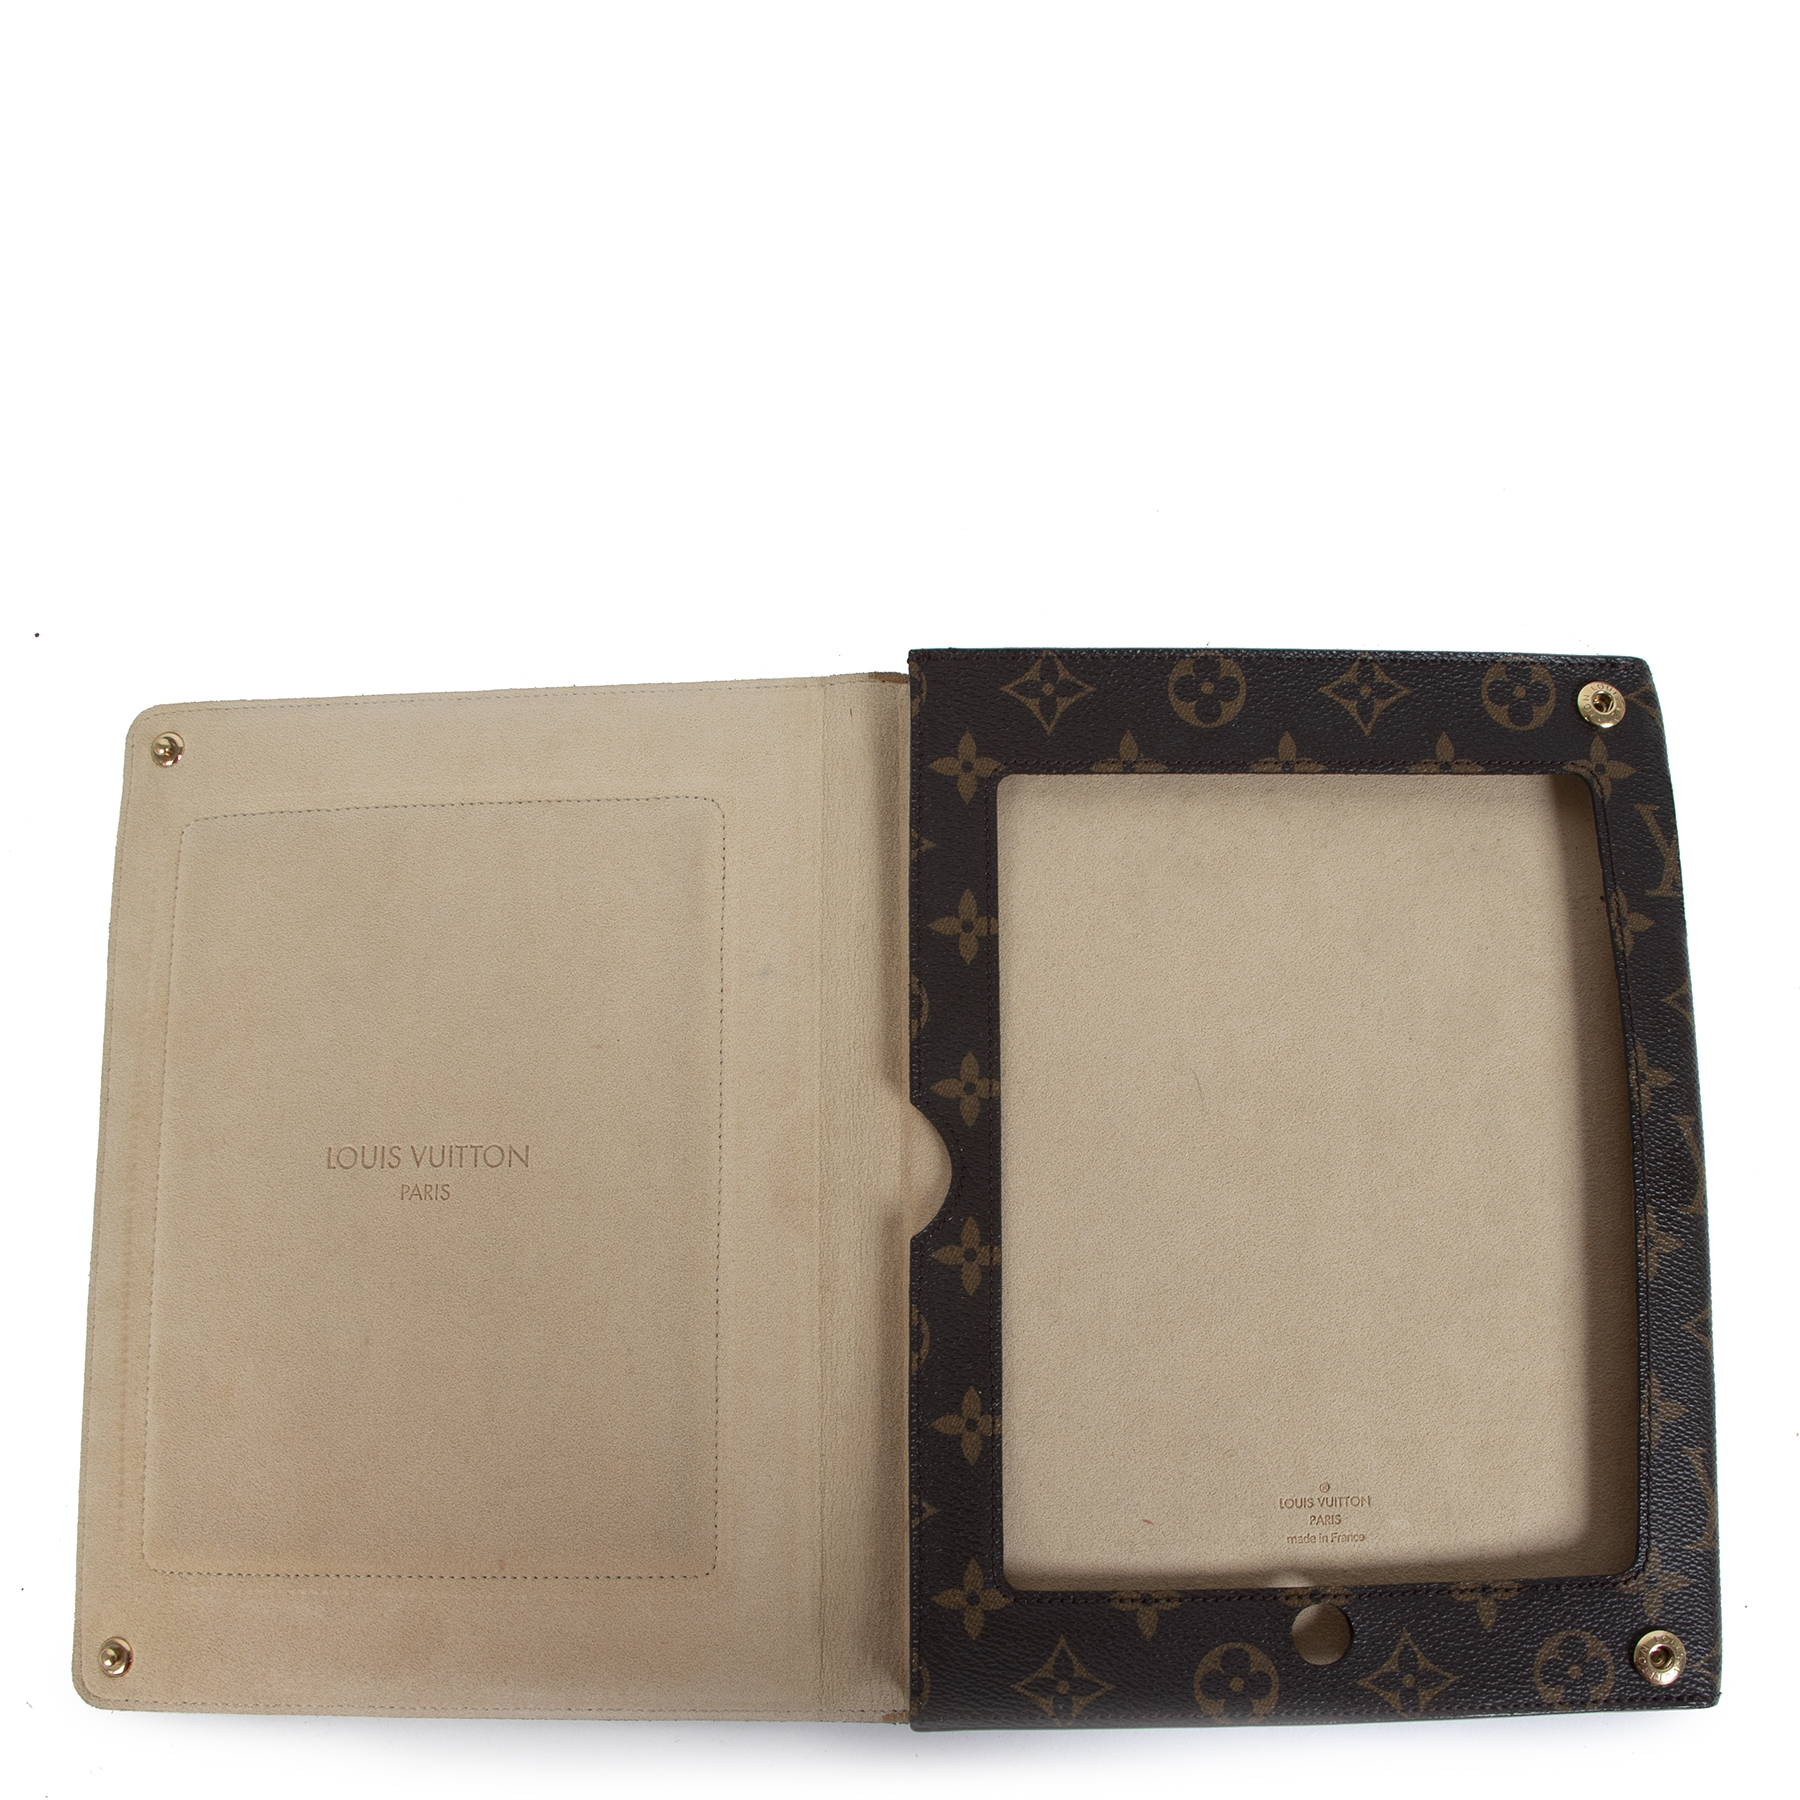 Authentic secondhand Louis Vuitton Monogram Leather Ipad 2 Case designer accessories designer ipad cases designer brands fashion luxury vintage webshop safe secure online shopping worldwide shipping delivery